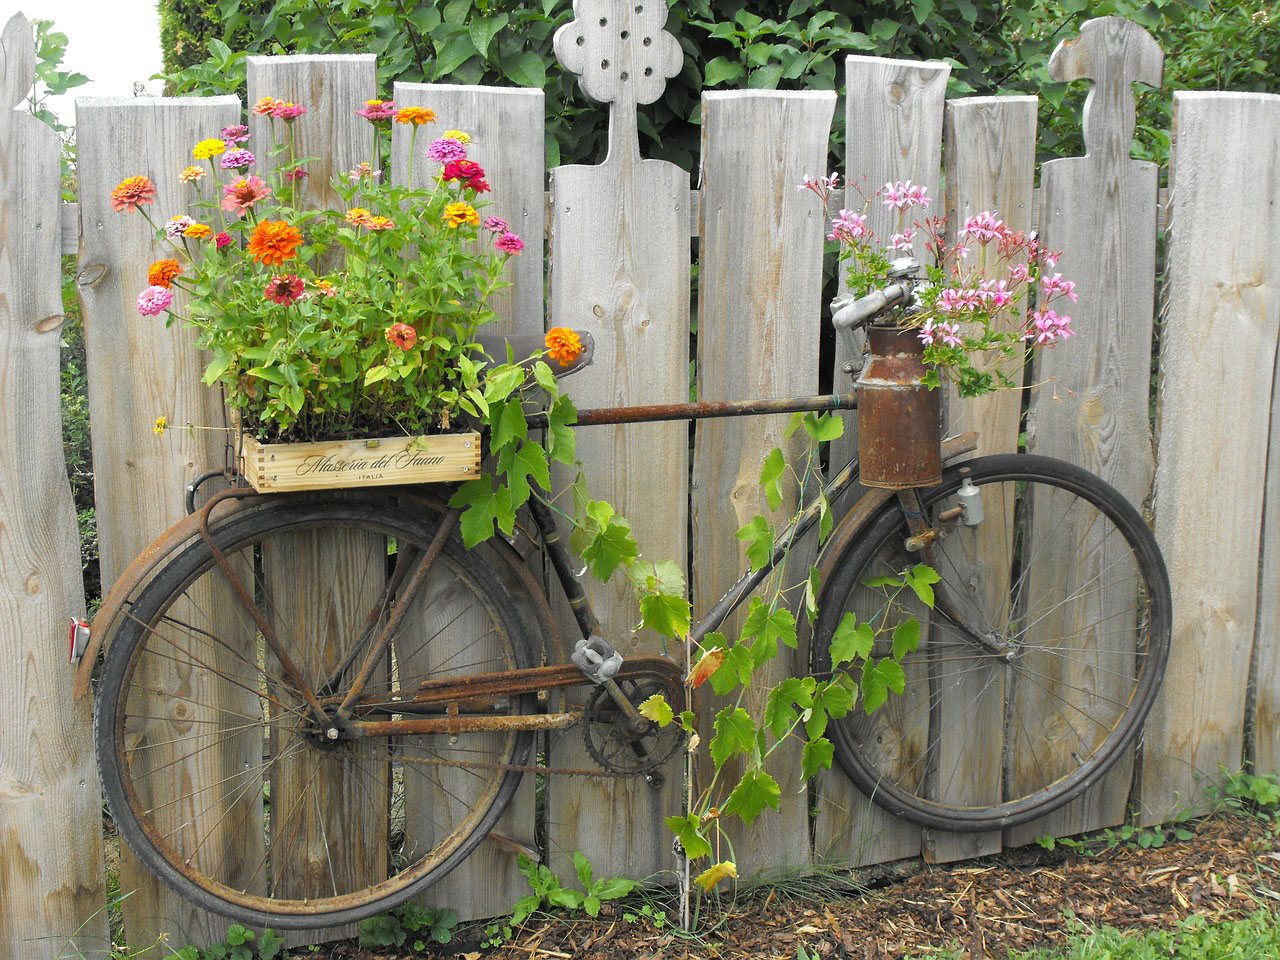 about bicycle with flowers in basket on fence